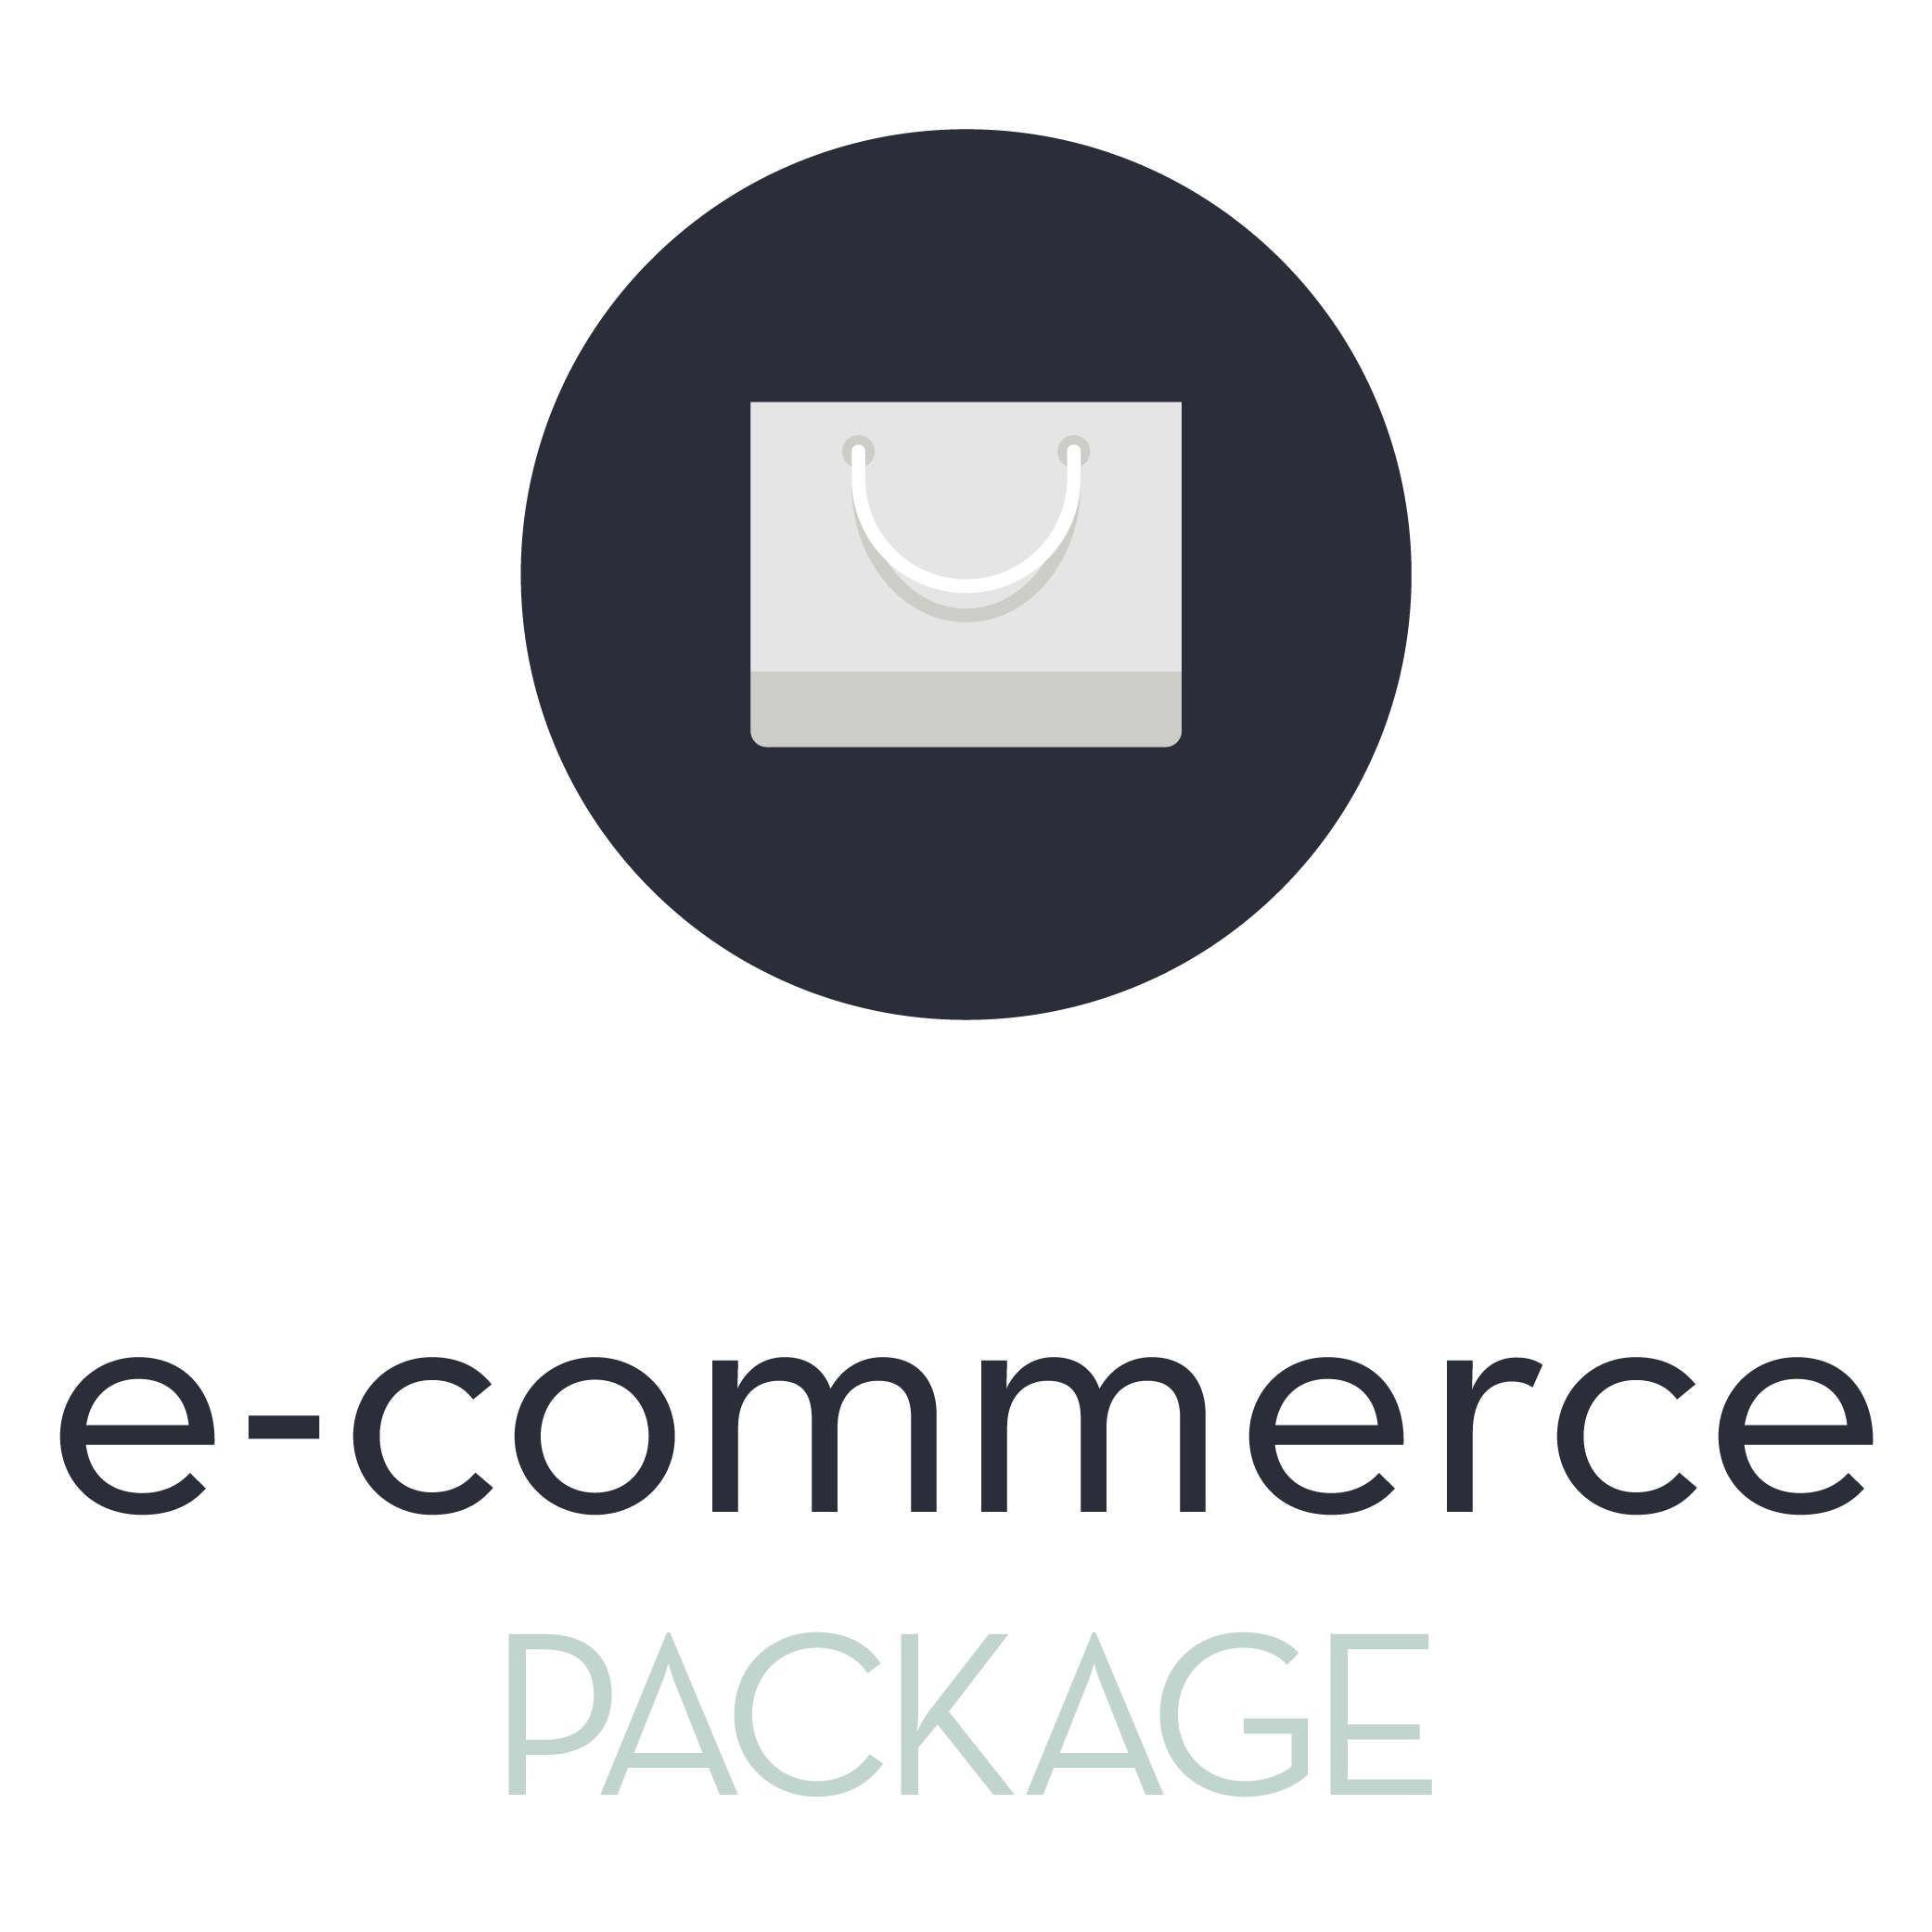 When your main focus is to sell products online, then this E-commerce package is what you need. If you already have a retail location and want to add an online option, this package will get you started and allow you to add more products along the way. - • Small to Large Size Business• Sell products through e-commerce and accepting payment options through an online service• Offers the option to update, change and add product on a regular basis from your own login account